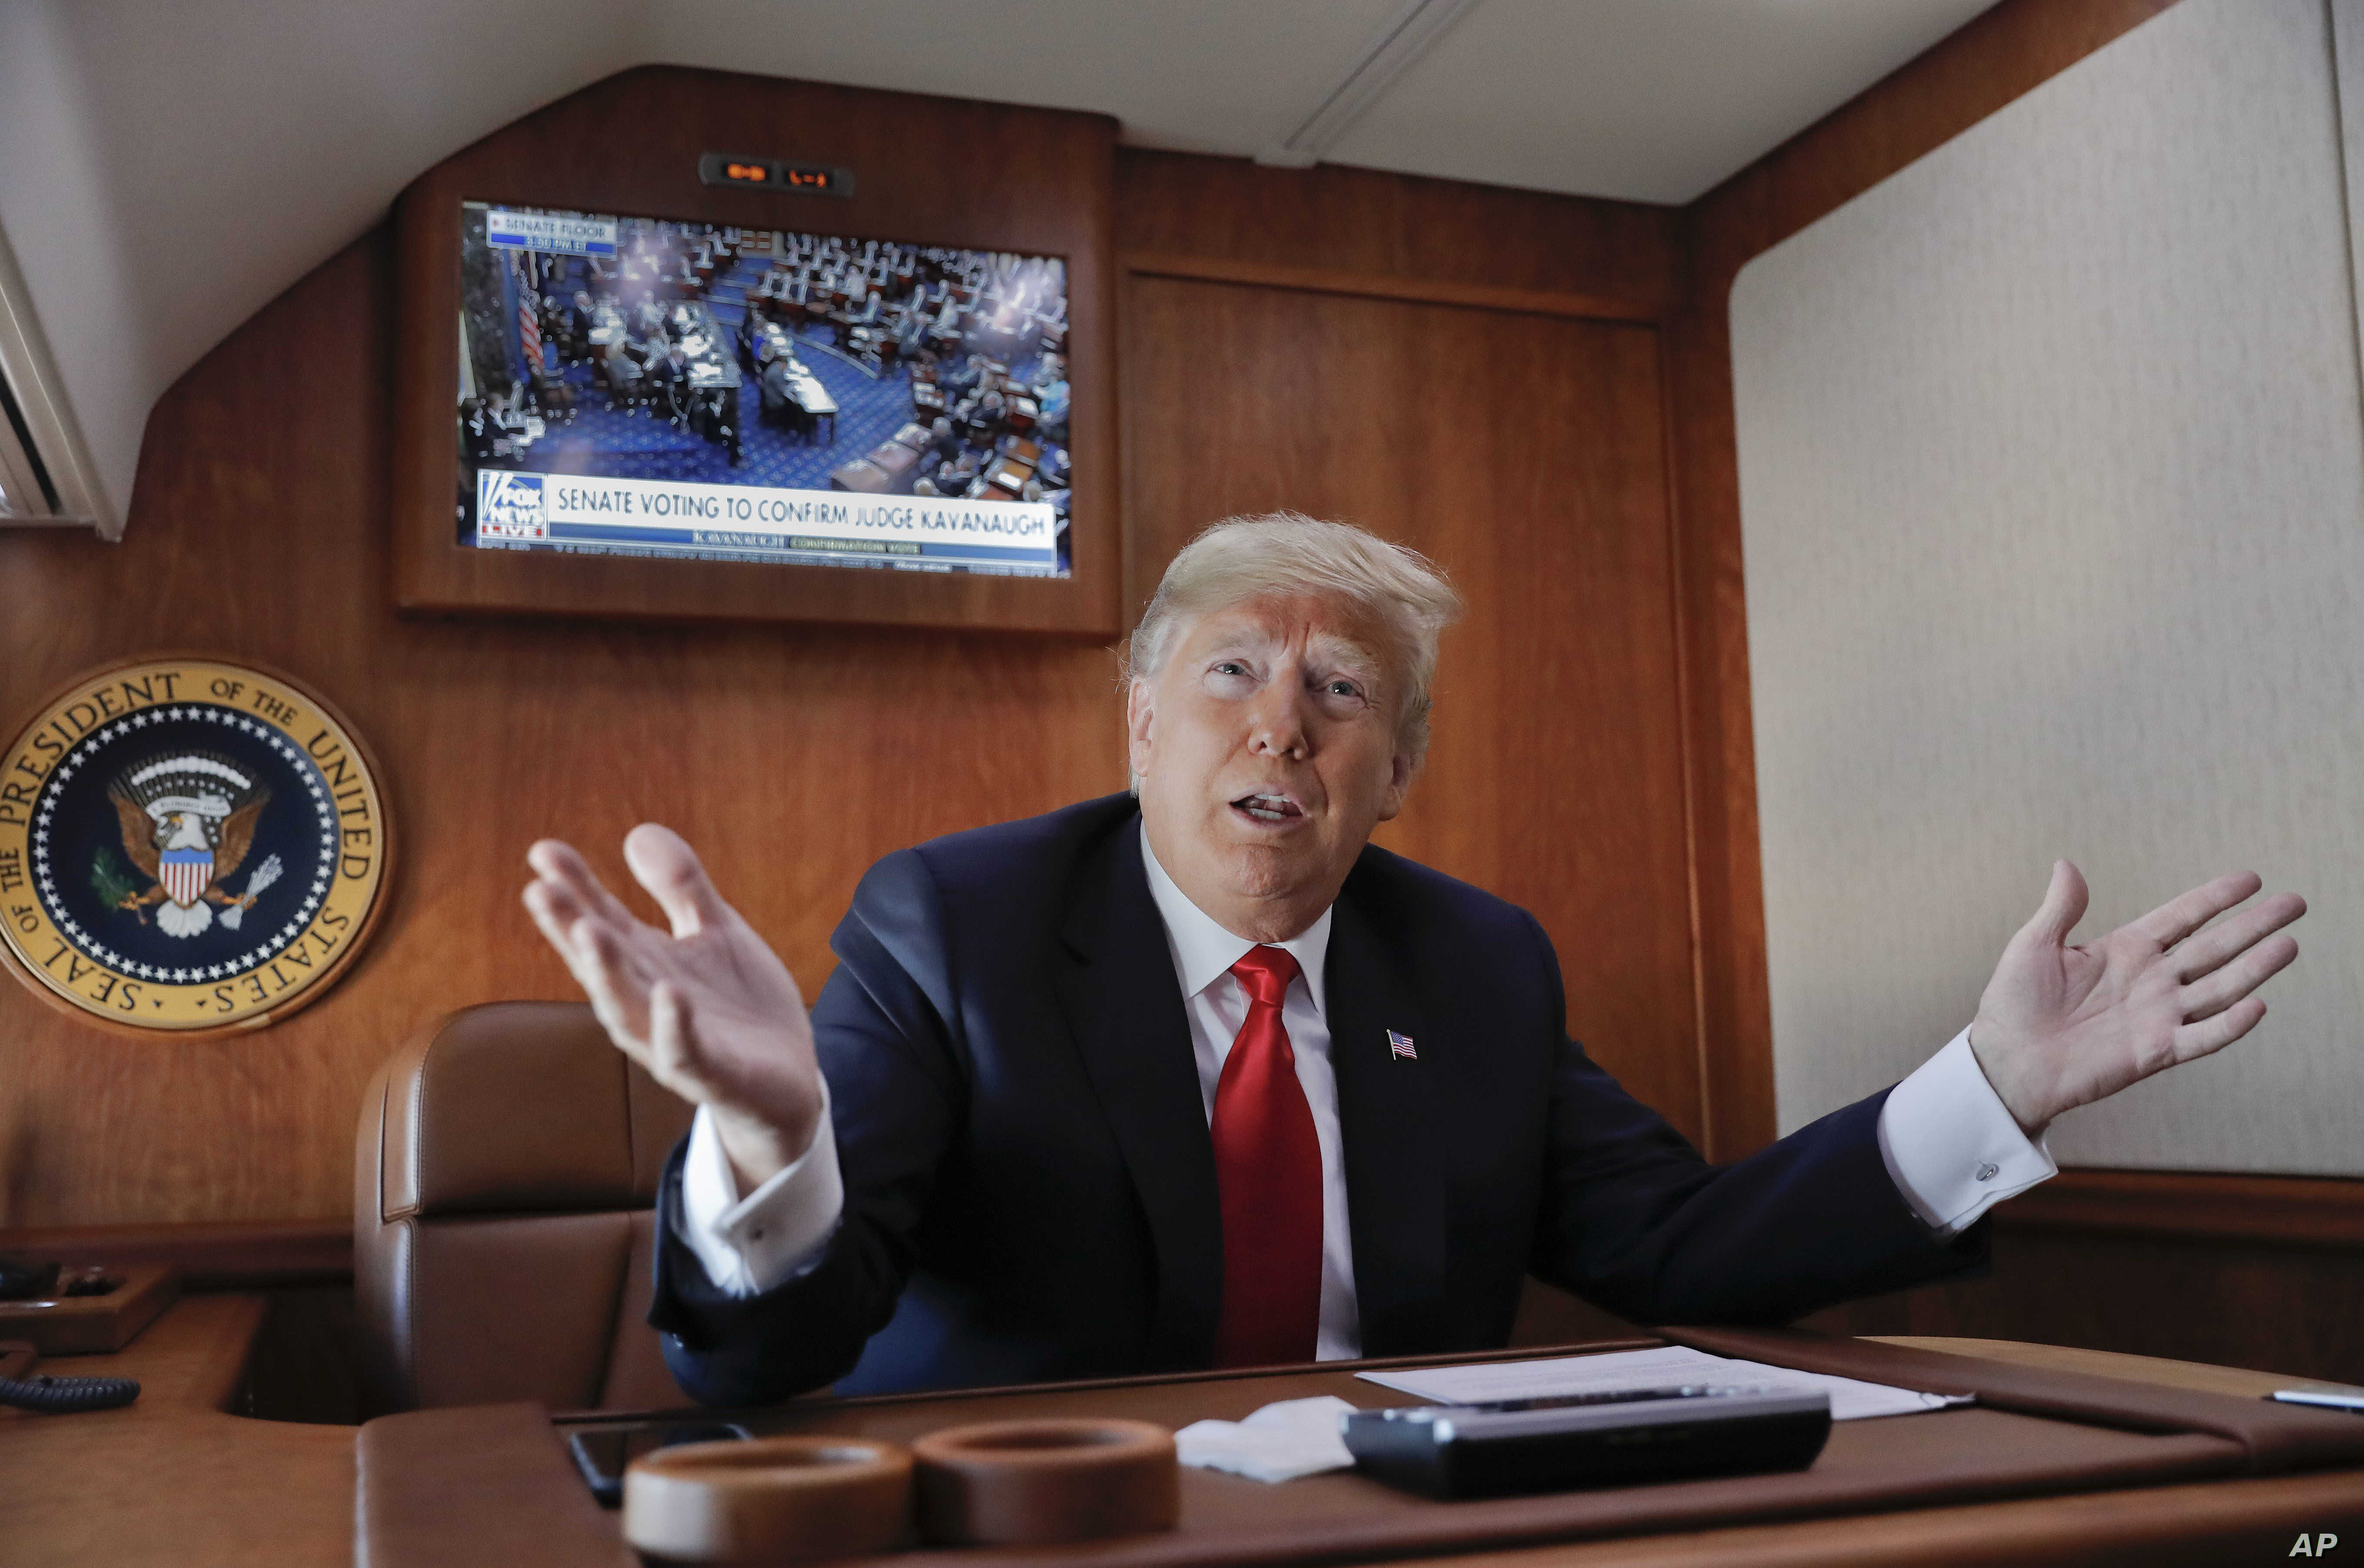 President Donald Trump, on board Air Force One, gestures while watching a live television broadcast of the Senate confirmation vote of Supreme Court nominee Brett Kavanaugh, Oct. 6, 2018. Trump was traveling from Washington to Topeka, Kan., for a cam...